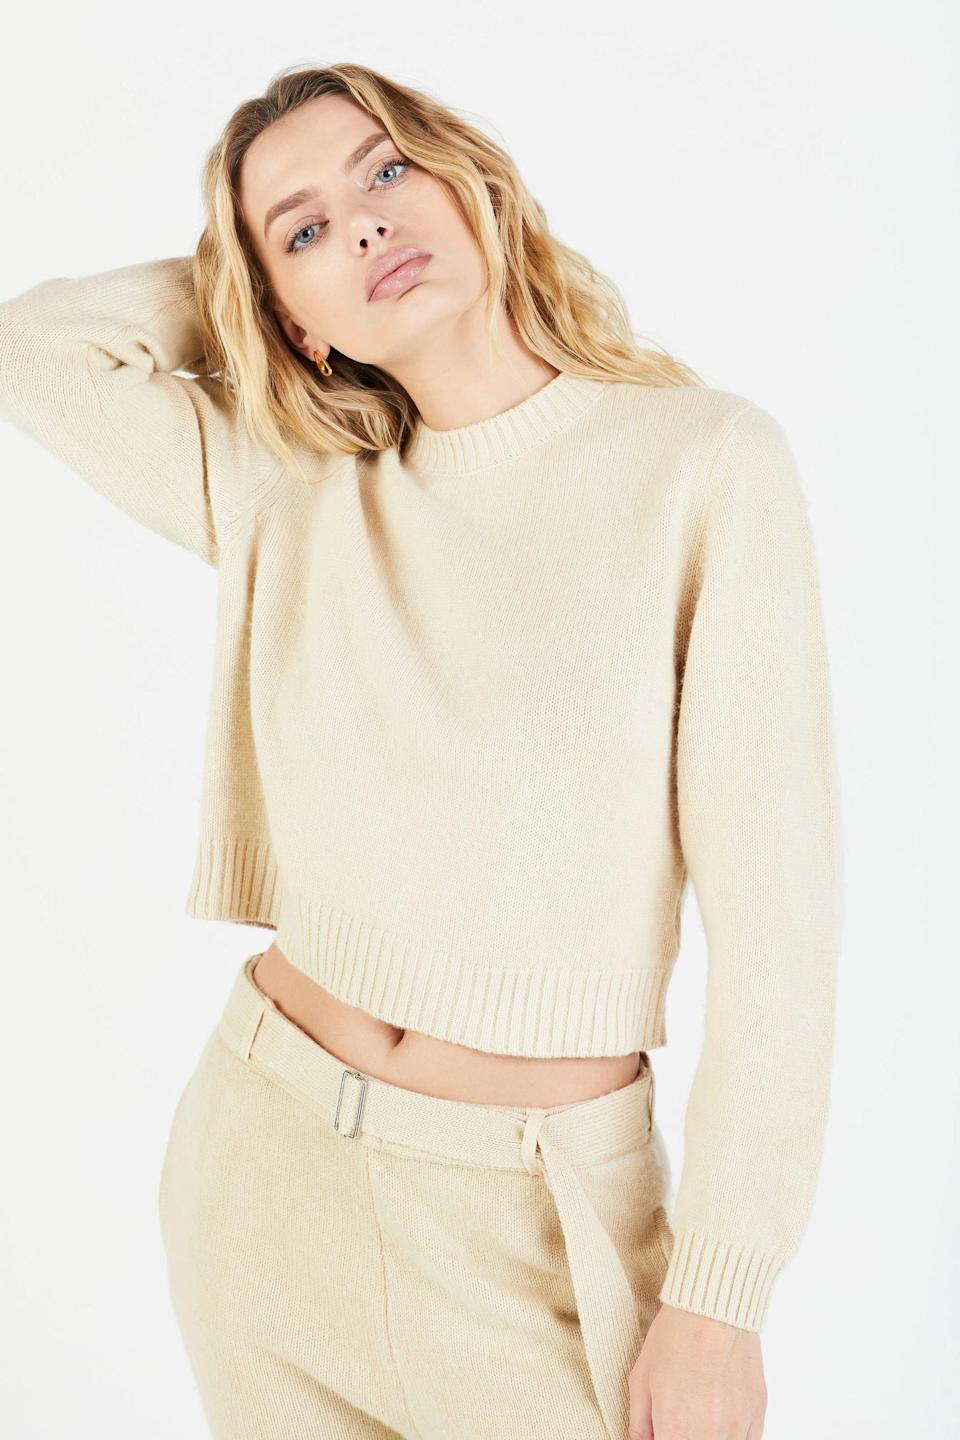 """<p>""""In my opinion, one of the best gifts you can give yourself is a zero-think, no-fuss outfit. I feel like the <span>Cotton Citizen Lima Crew</span> ($450) and matching <span>Cotton Citizen Lima Sweats</span> ($495) in oatmeal tint will also look pretty great with a glass of rosé in hand for a <a href=""""https://www.popsugar.com/fashion/Valentine-Day-Outfits-21586777"""" class=""""link rapid-noclick-resp"""" rel=""""nofollow noopener"""" target=""""_blank"""" data-ylk=""""slk:Valentine's Day at-home selfie"""">Valentine's Day at-home selfie</a>. Coming soon."""" - SW</p>"""